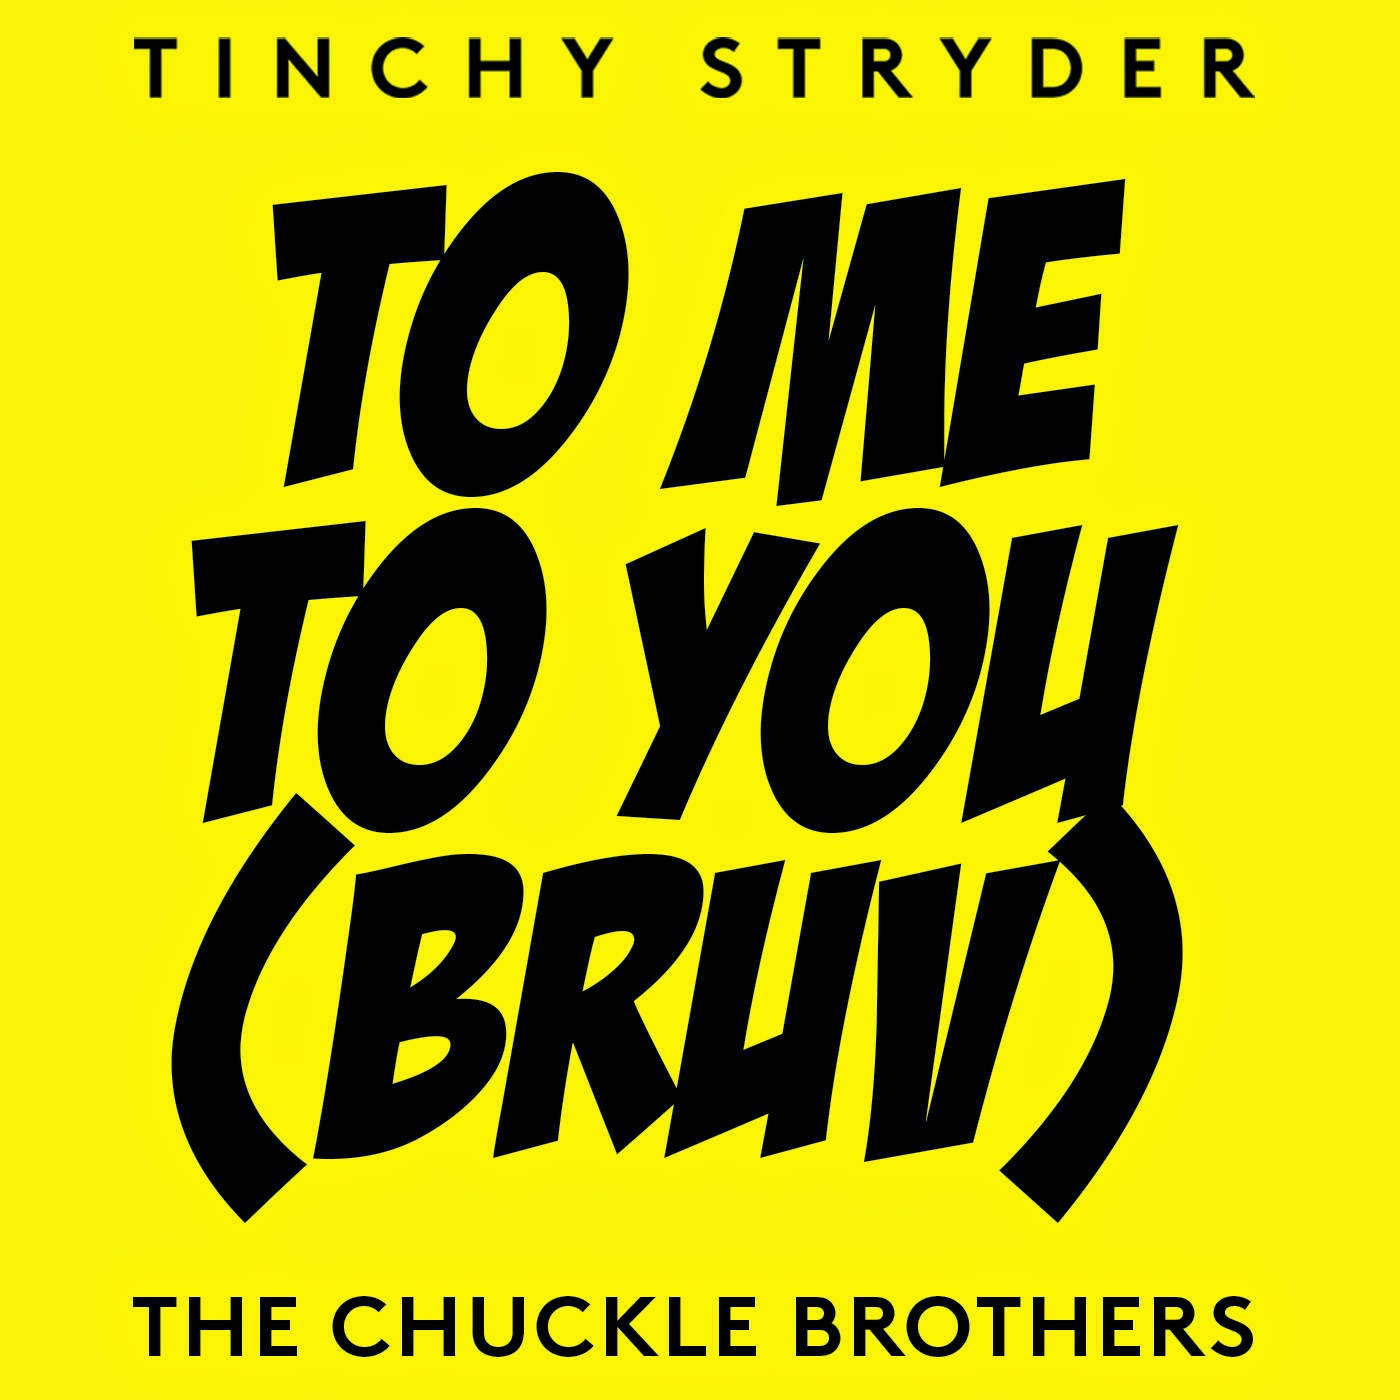 Tinchy Stryder & The Chuckle Brothers – To Me, To You (Bruv) – Single [iTunes Plus AAC M4A] (2014)